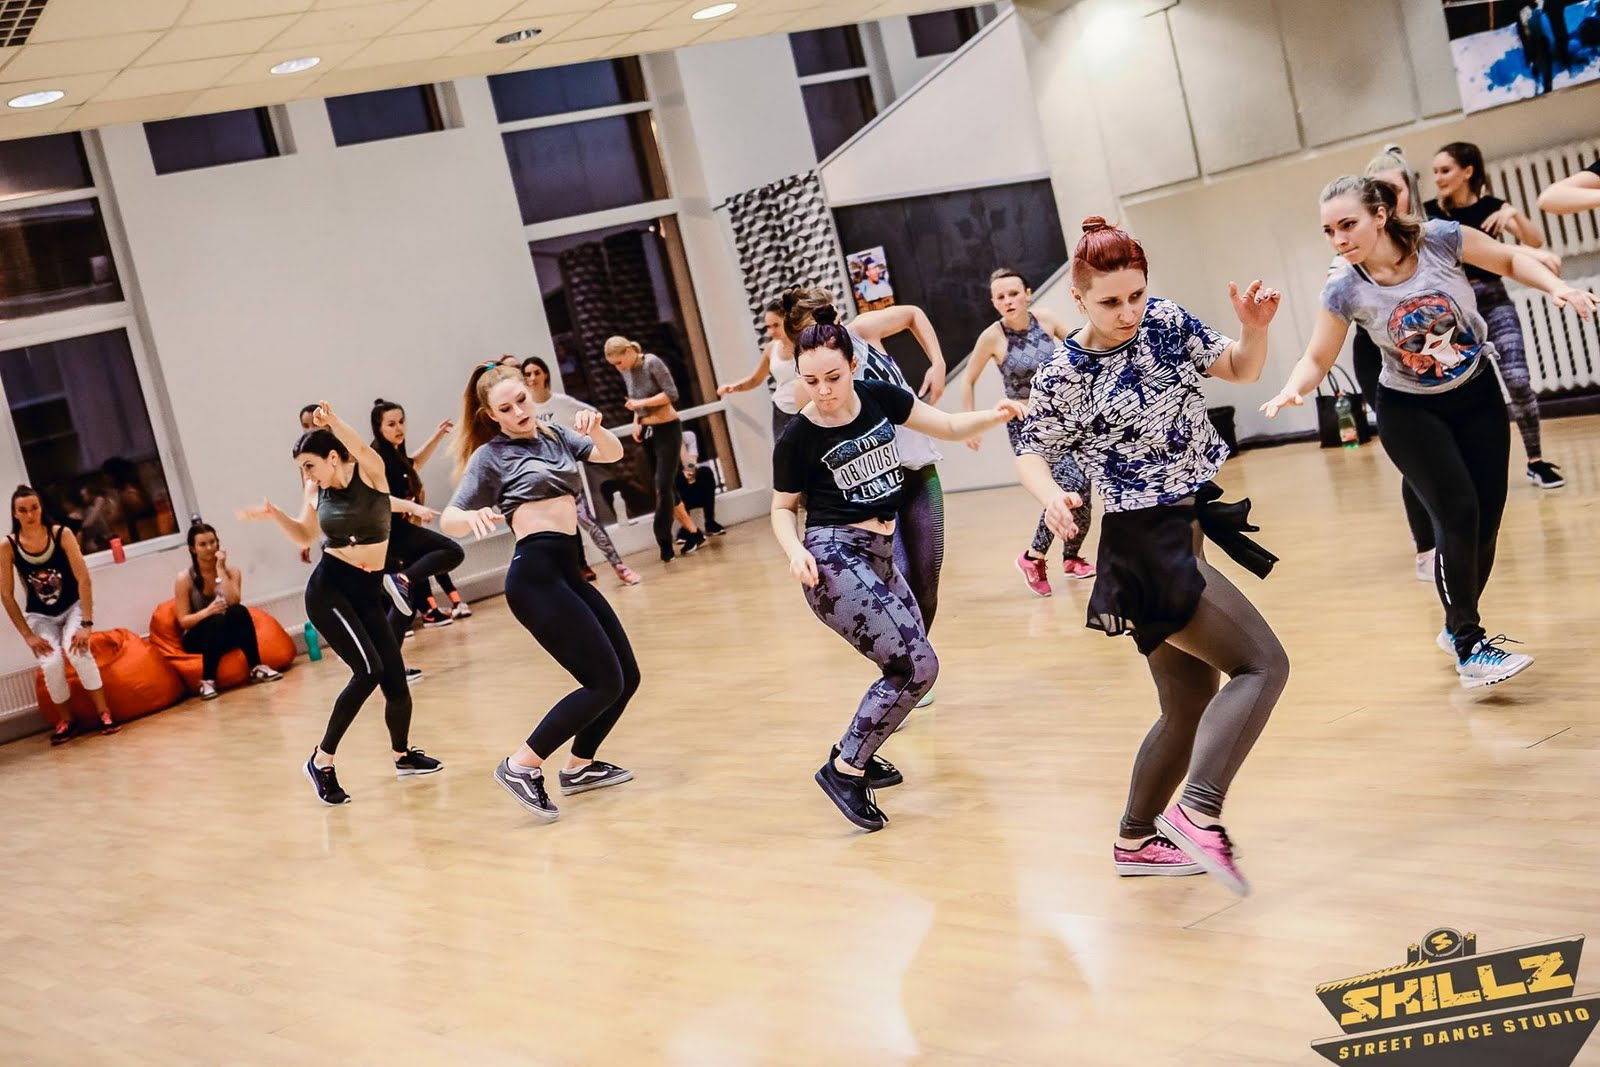 Dancehall workshop with Jiggy (France) - 36.jpg